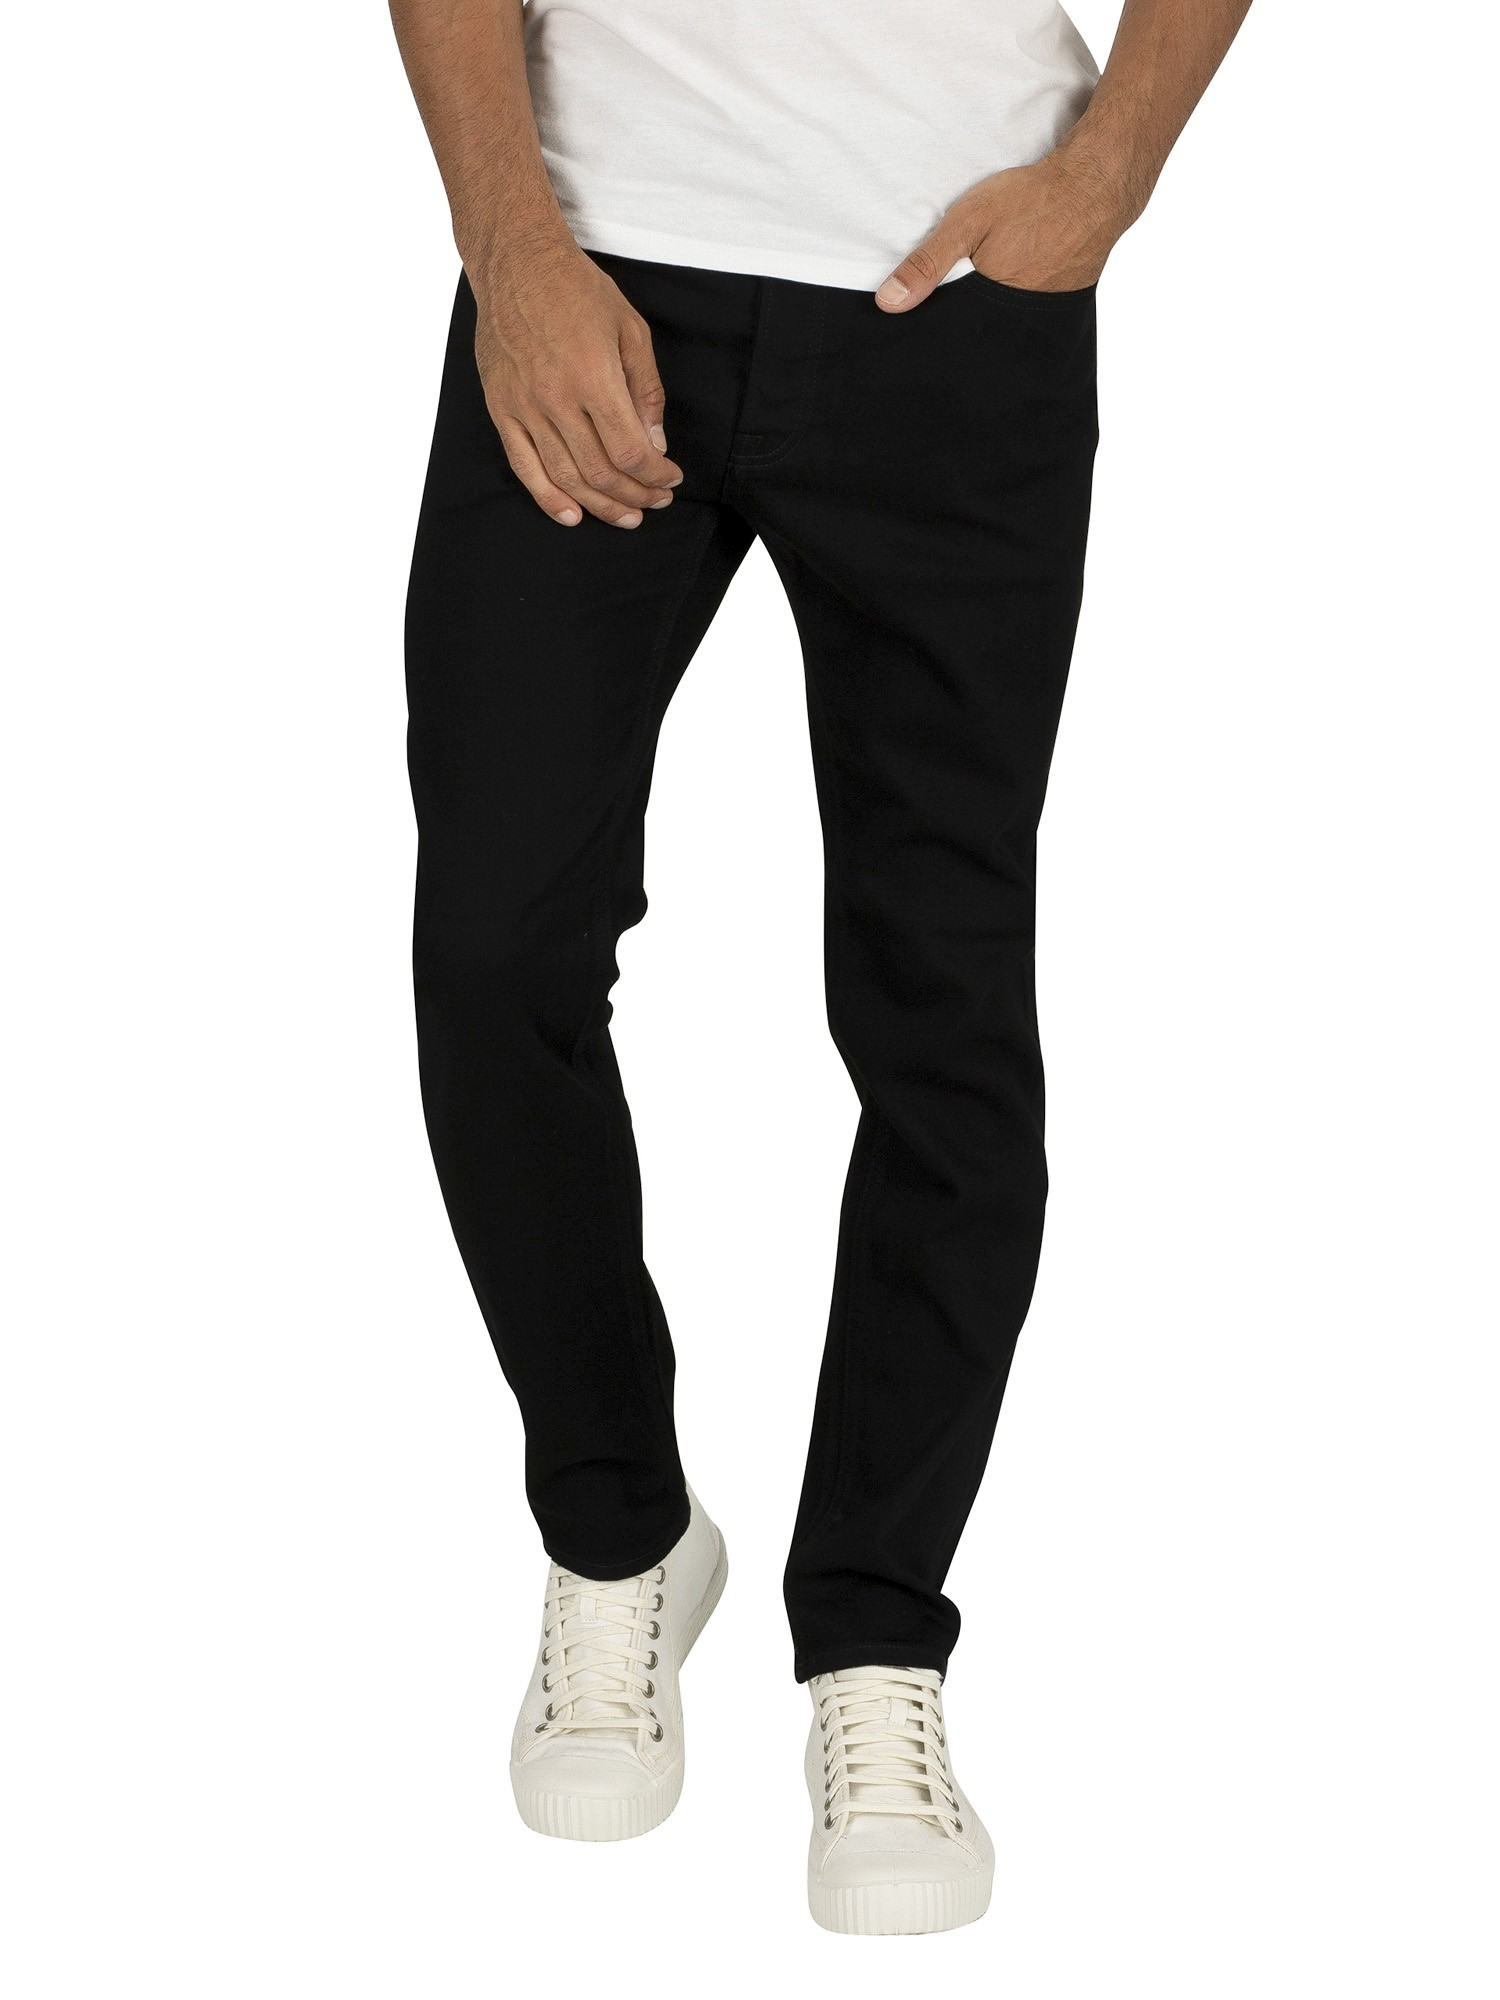 clearance prices casual shoes various styles Jack & Jones Tim Original 816 Slim Straight Jeans - Black Denim